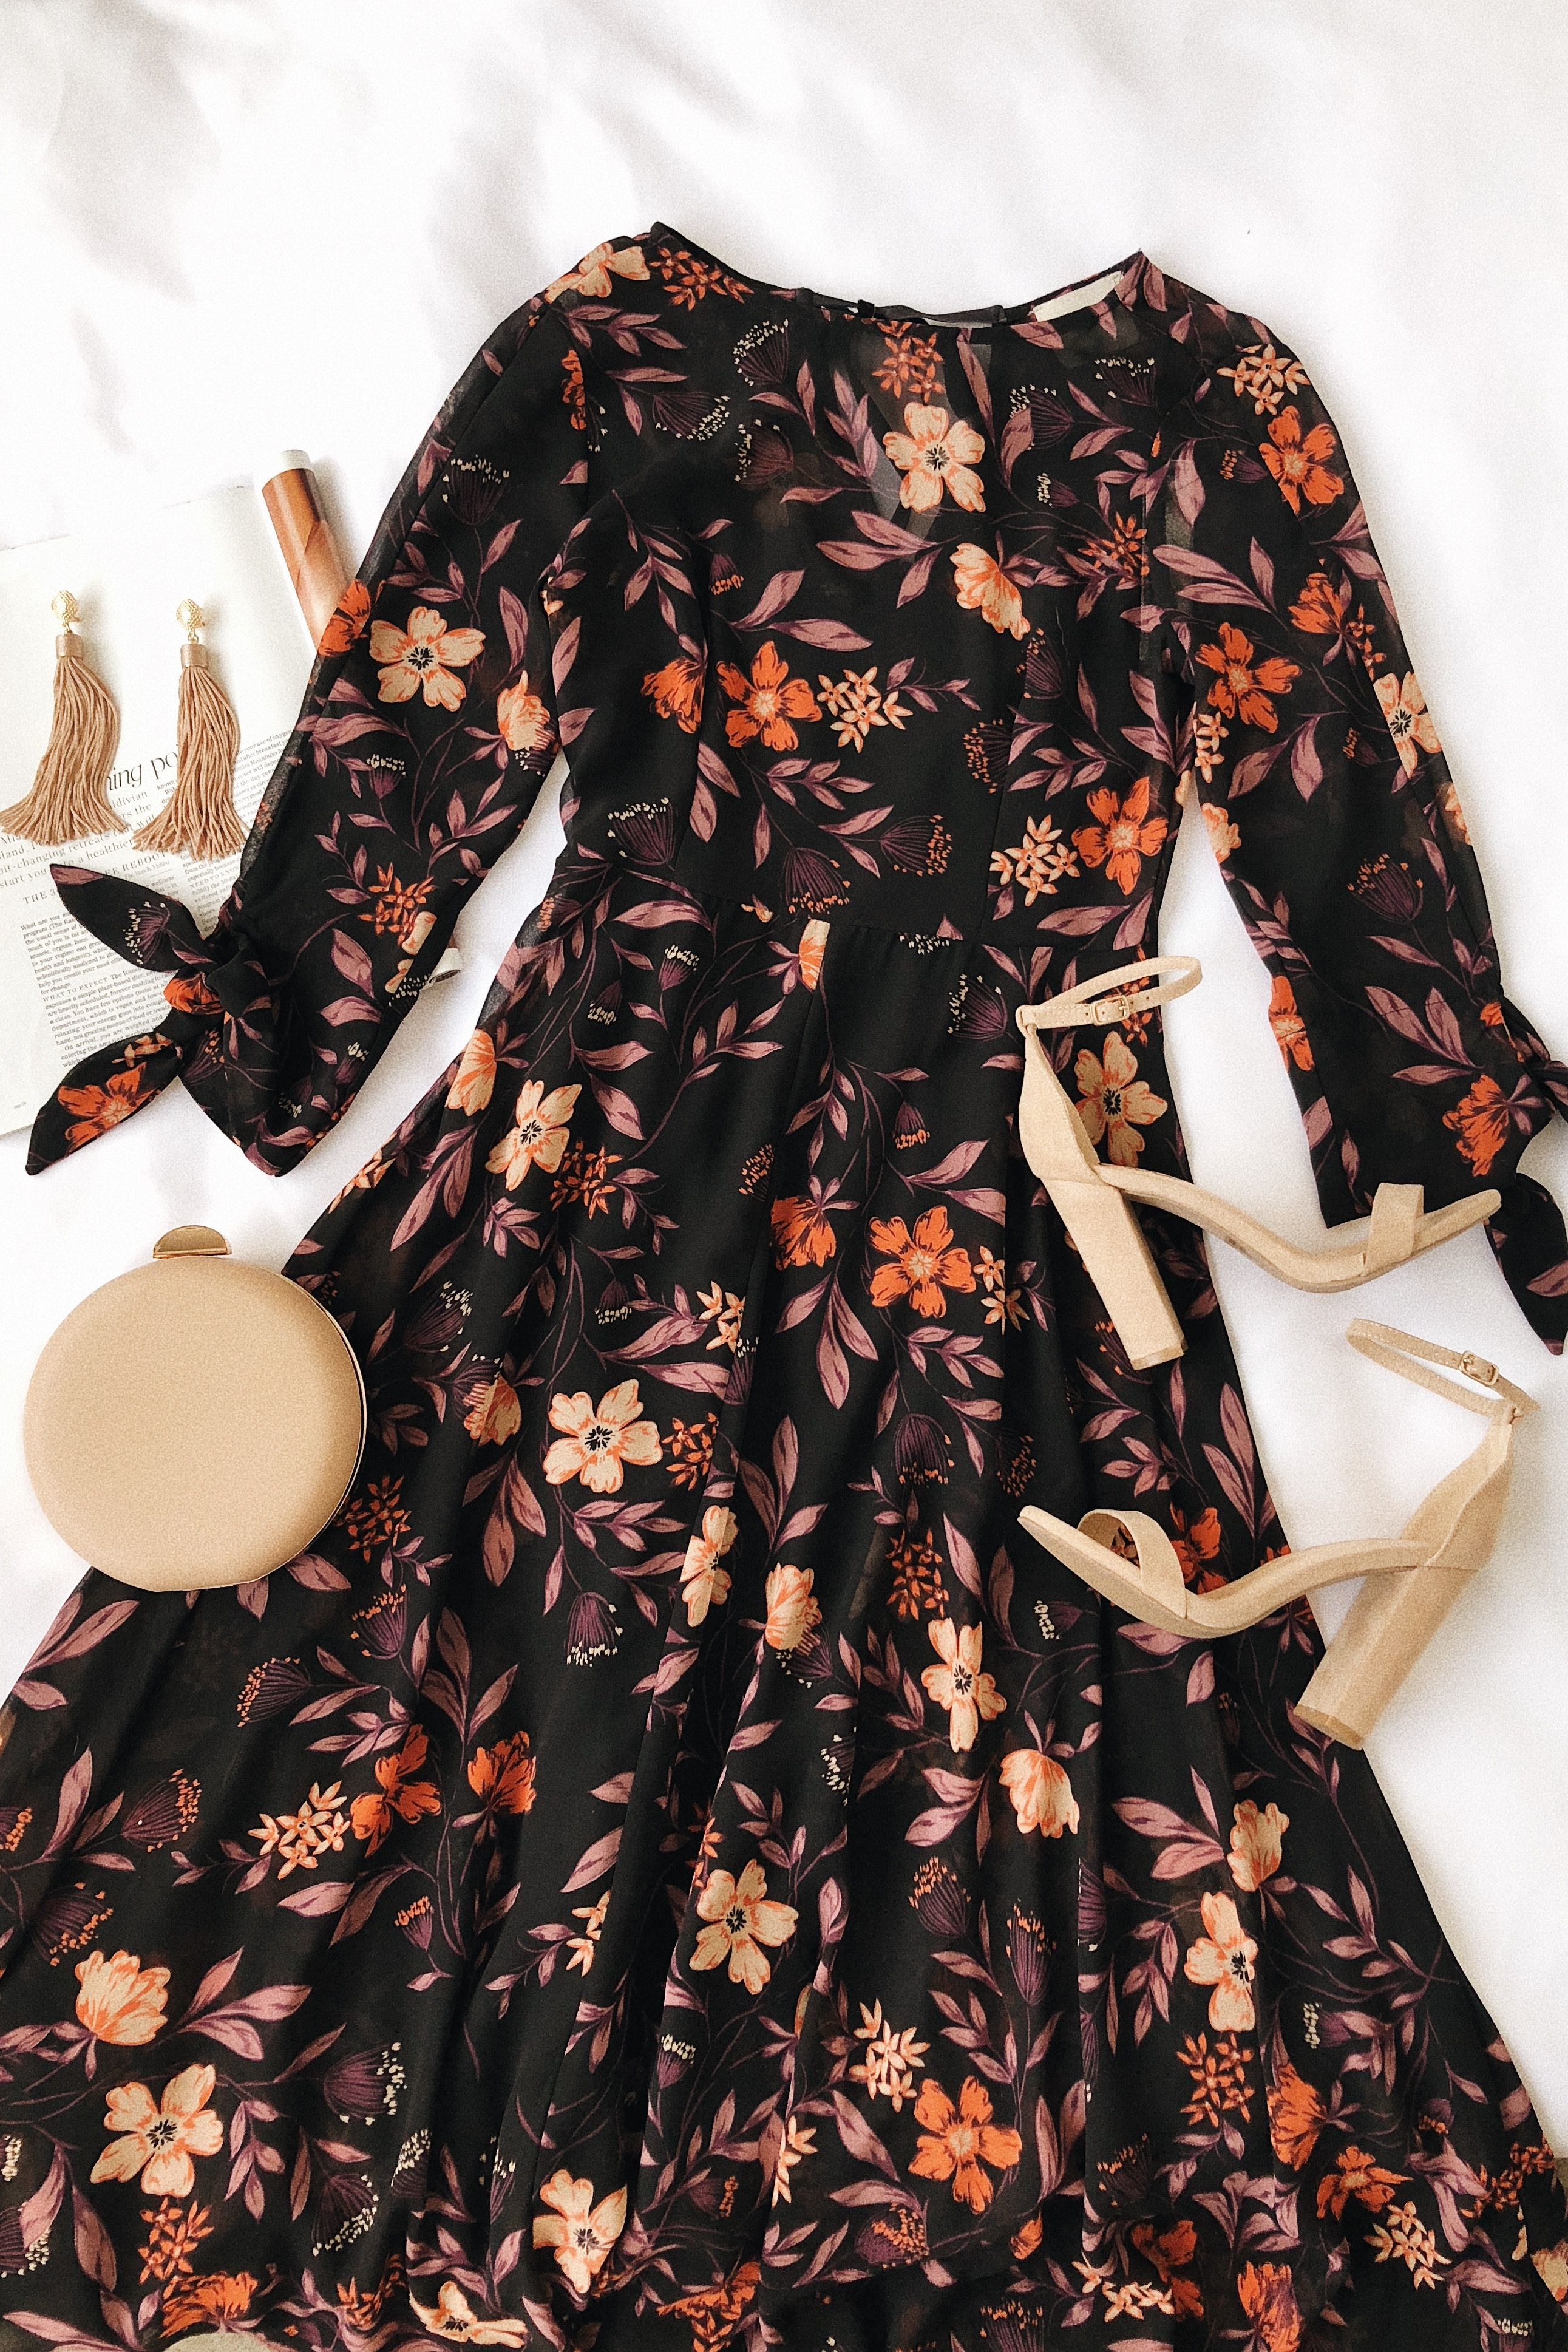 Canary yellow wedding decorations november 2018 Passionate Love Black Floral Print Midi Dress in   Best of New